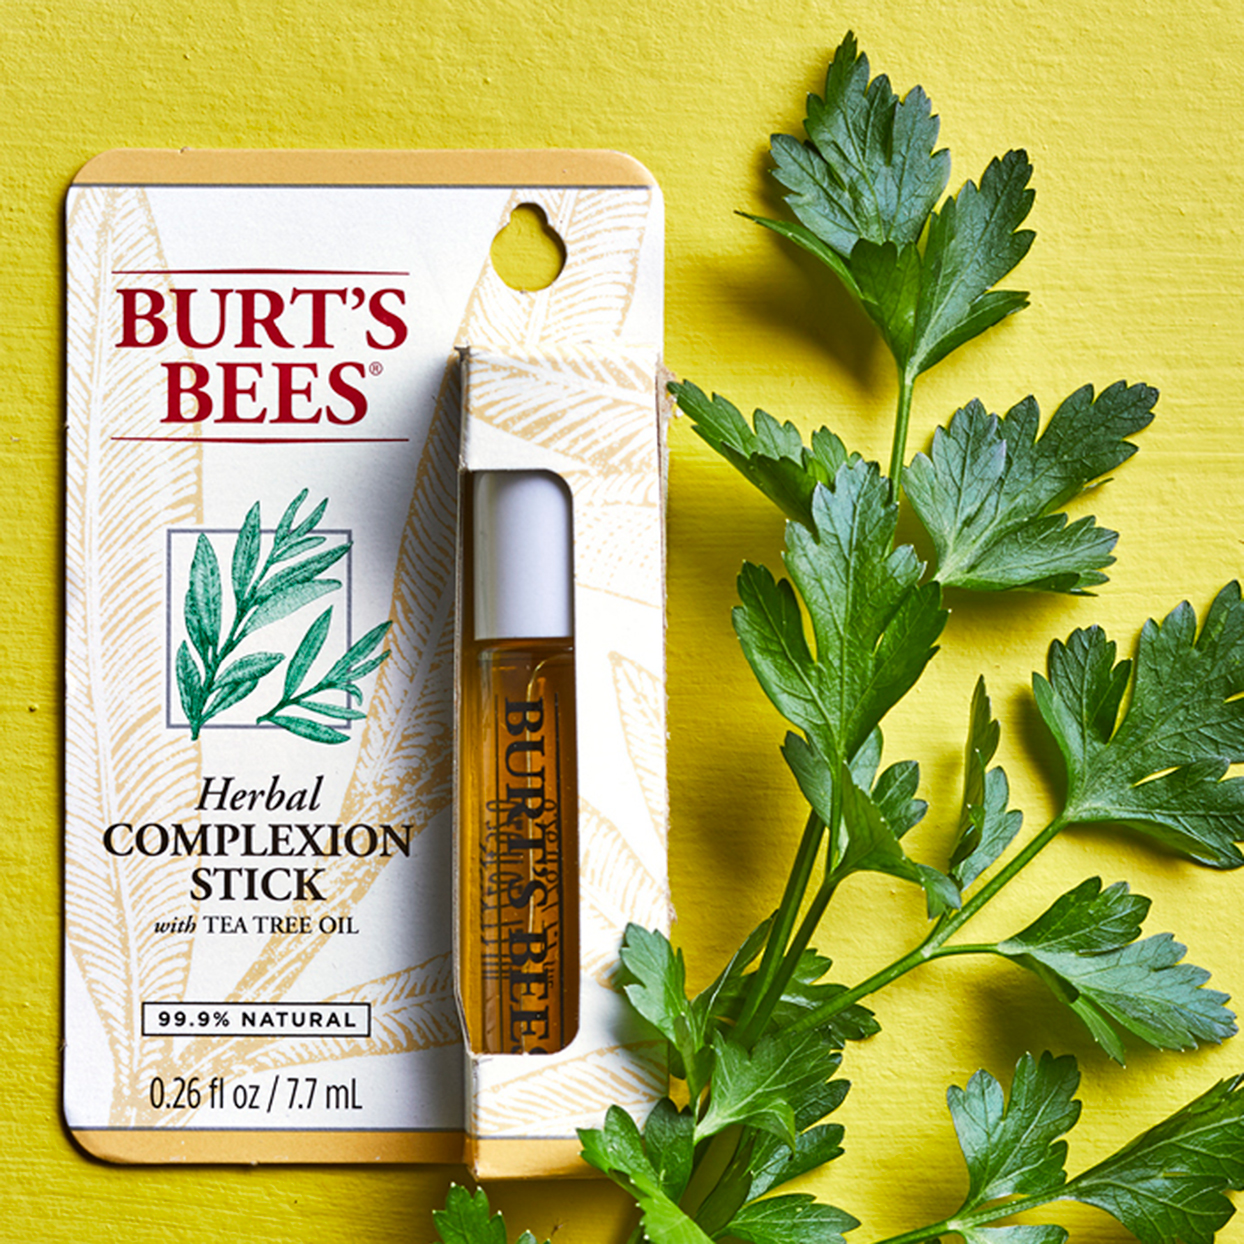 burts bees herbal complexion stick